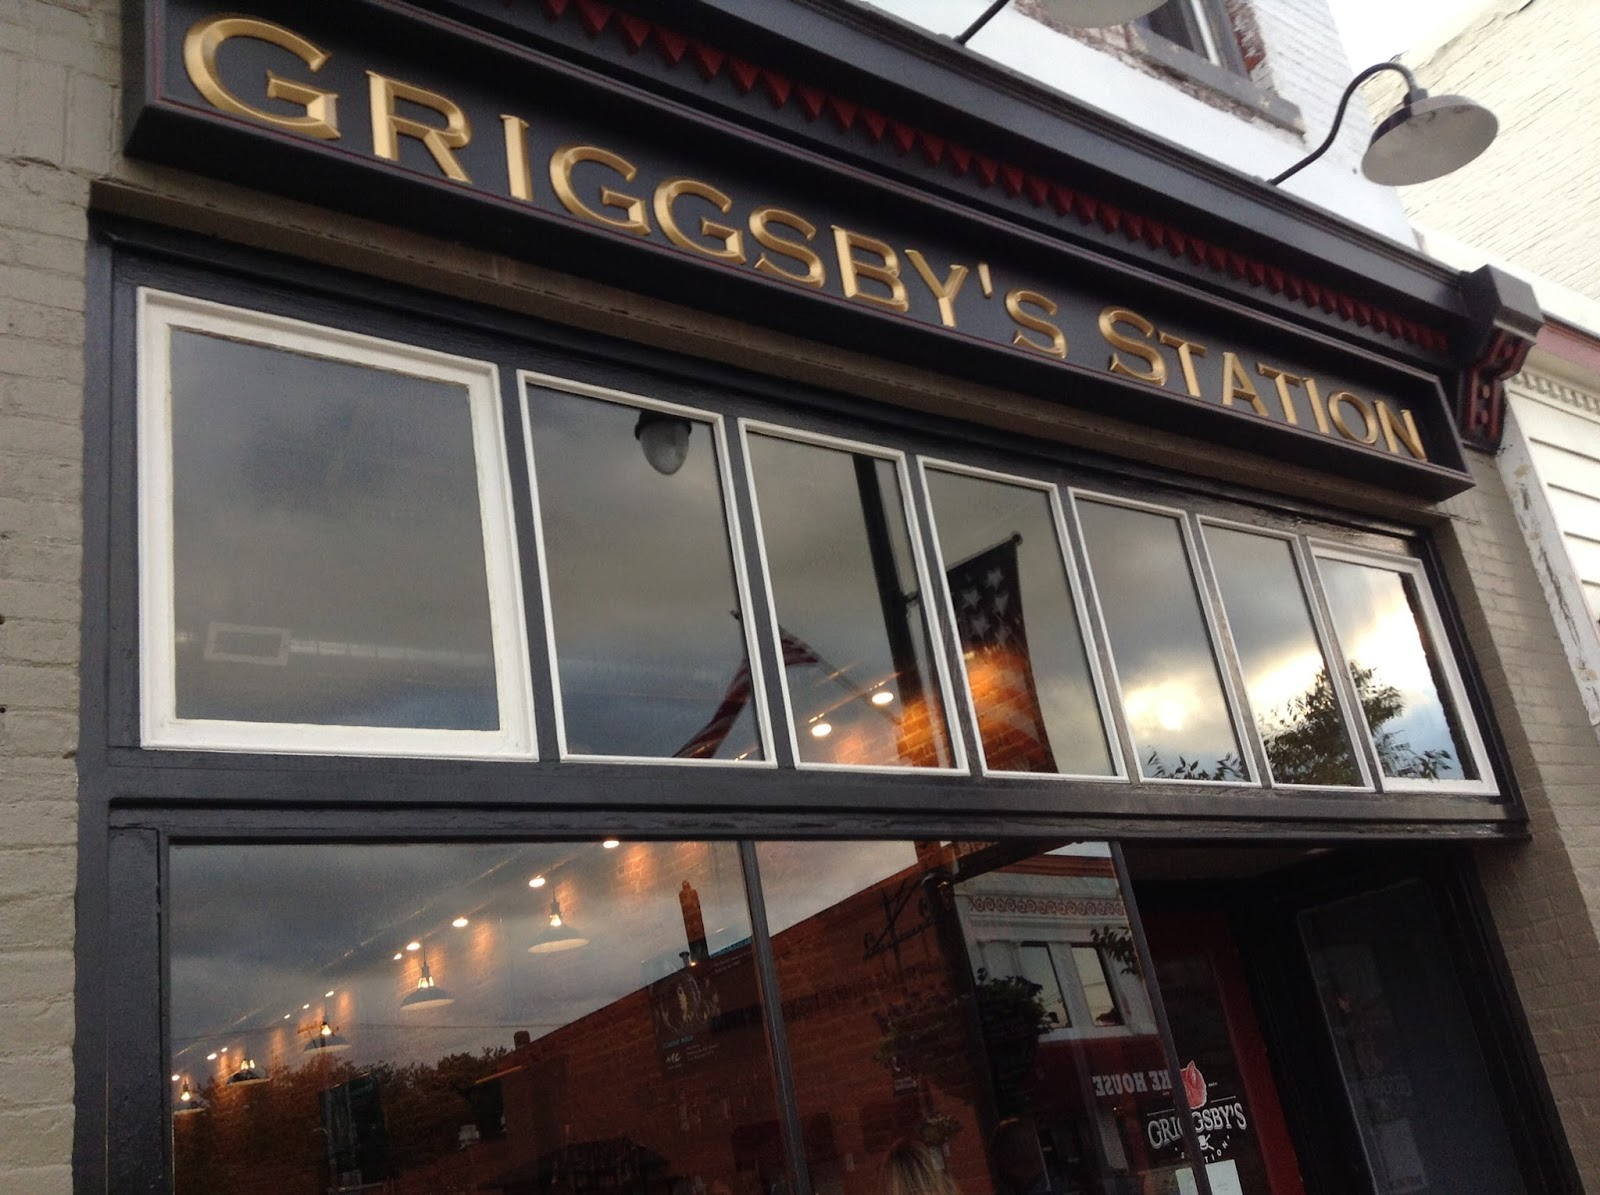 Griggsby S Station In Greenfield And Coming Soon To Irvington